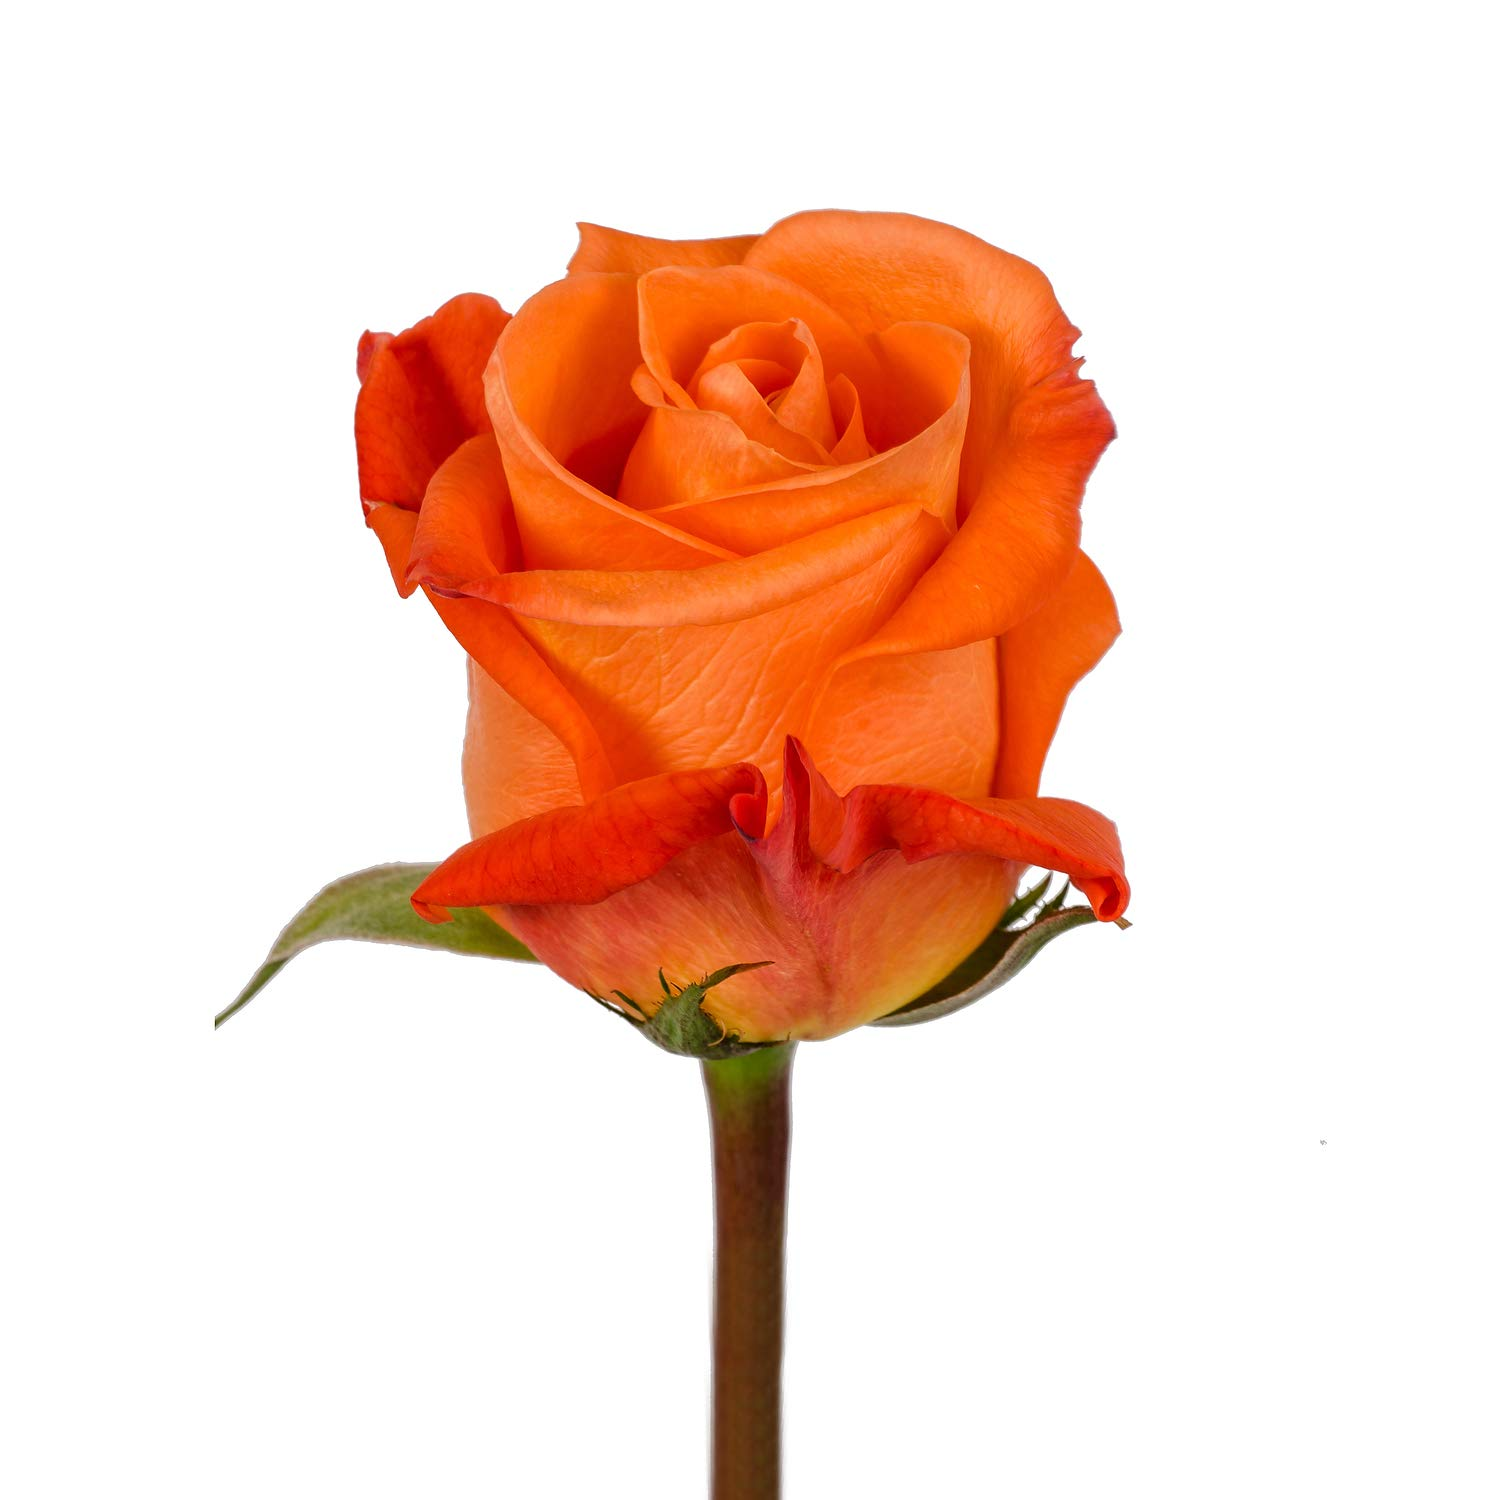 Farm Fresh Natural Orange Roses - 20 in - 100 stems by Bloomingmore